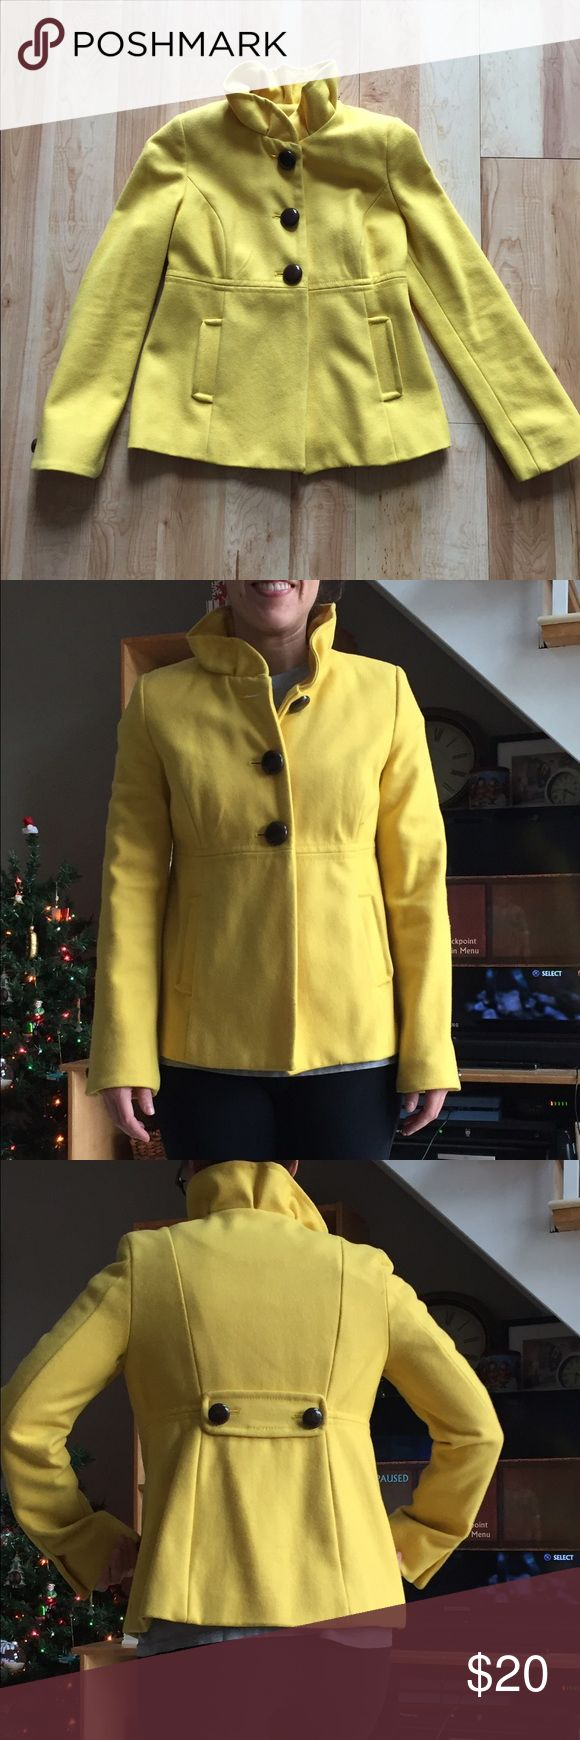 Yellow old navy pea coat Rarely worn, super cute, pea coat! Fits like a true xs. For size reference I'm 5ft tall, 110lbs, and this fits perfectly. Old Navy Jackets & Coats Pea Coats